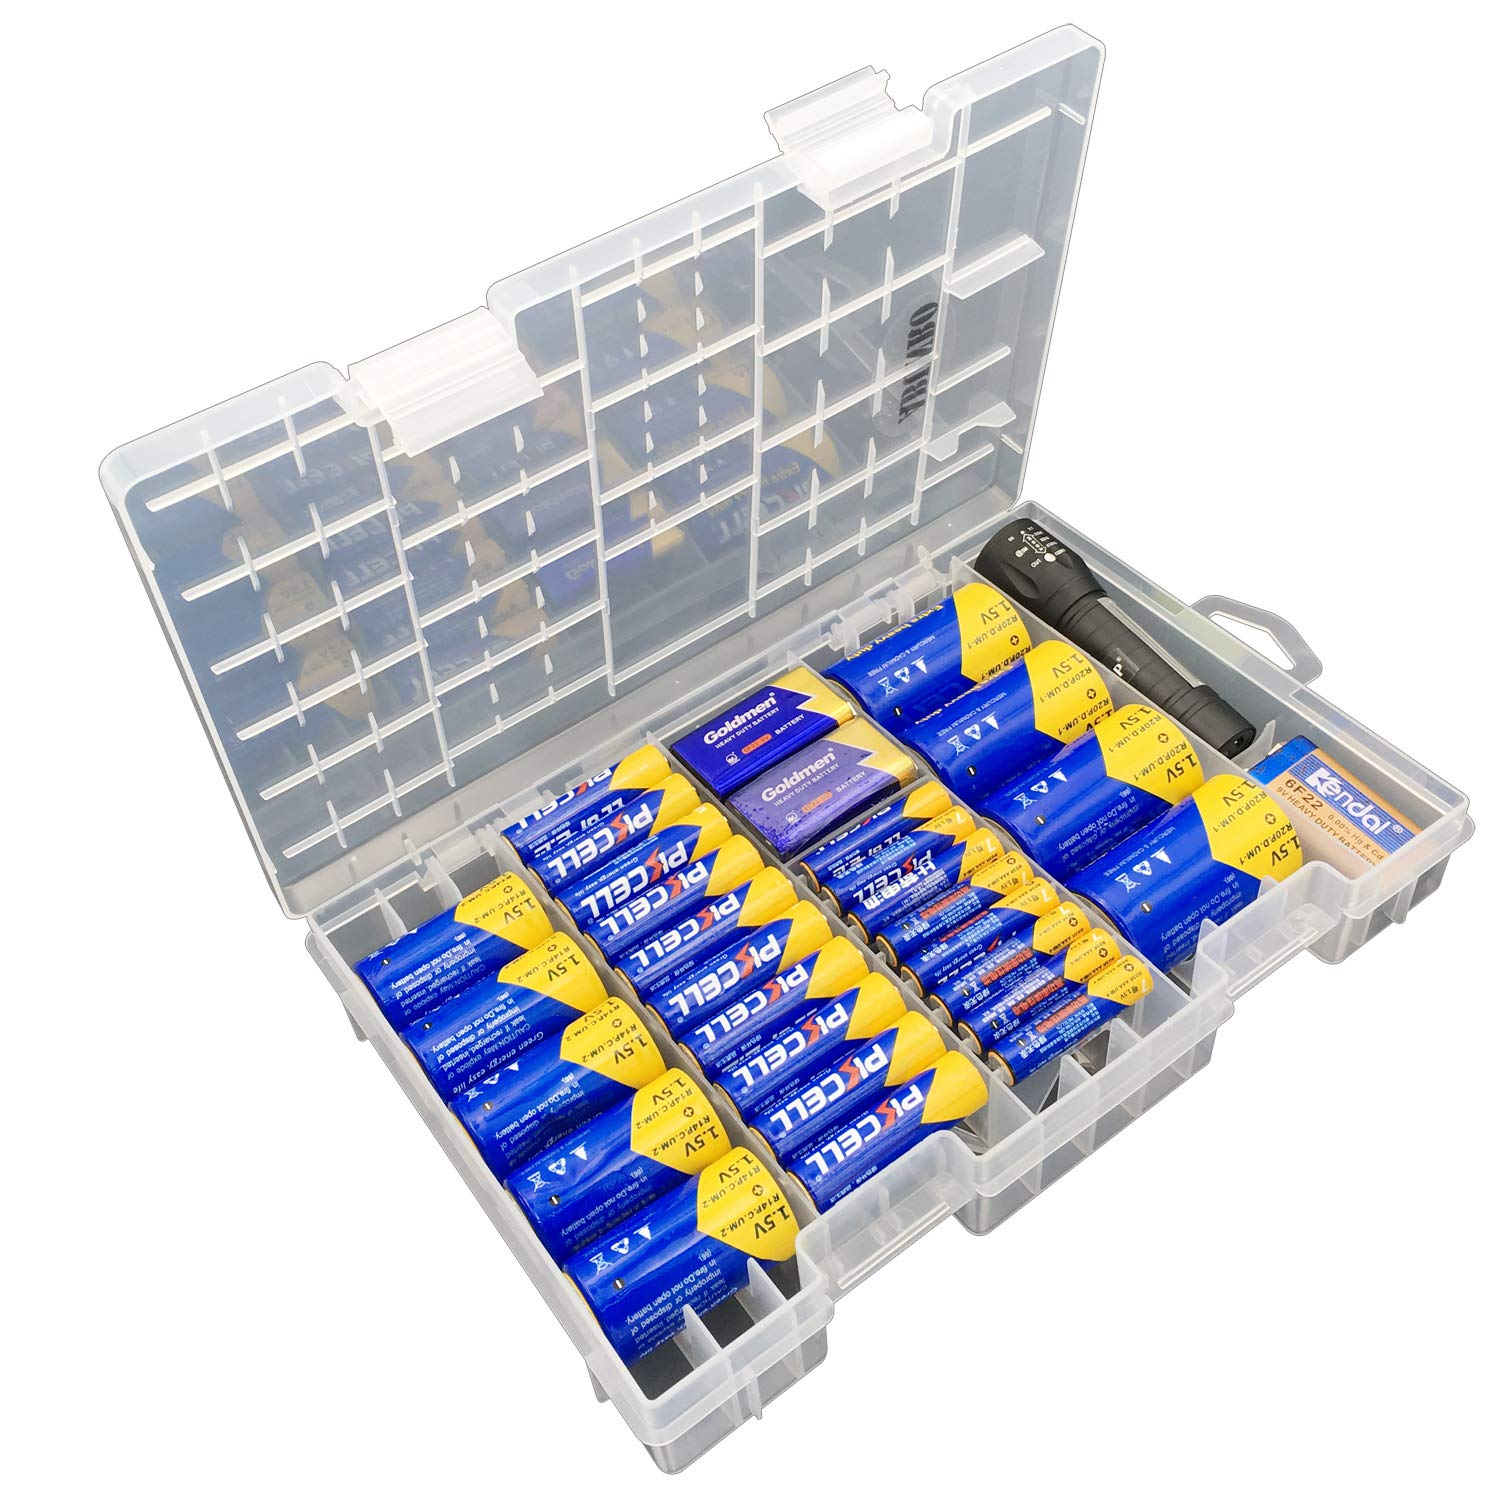 Battery Organizer Storage case for 68pcs Battery Holds, AA, AAA, C, D, 9 Volt Sizes and Button Battery Storage Box, Great Storage fordrawer, Home Offices and Garage Tools Room